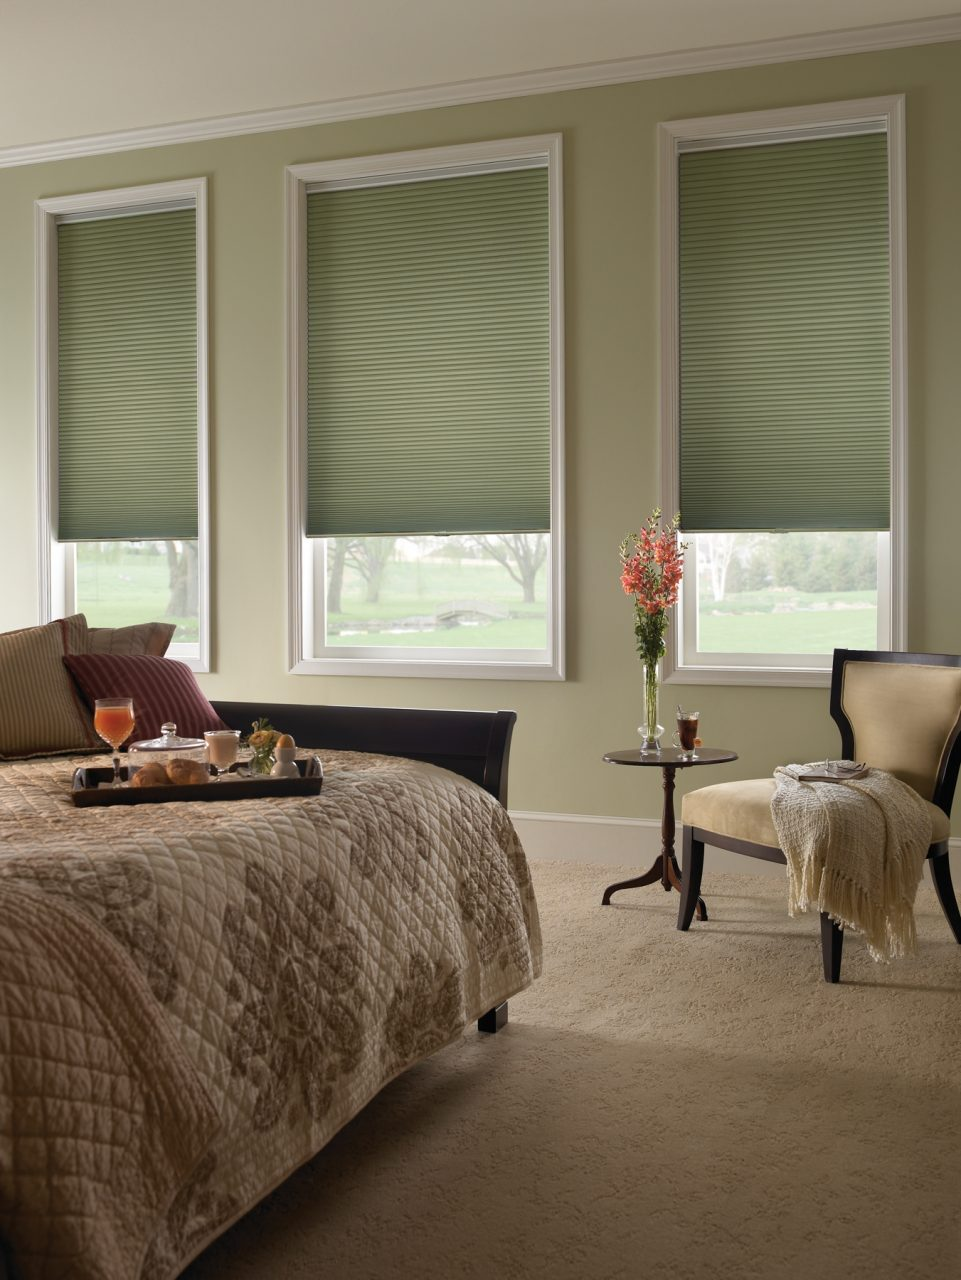 Bedroom Lovely Bedroom Window Shades And Best Sleeping Treatments